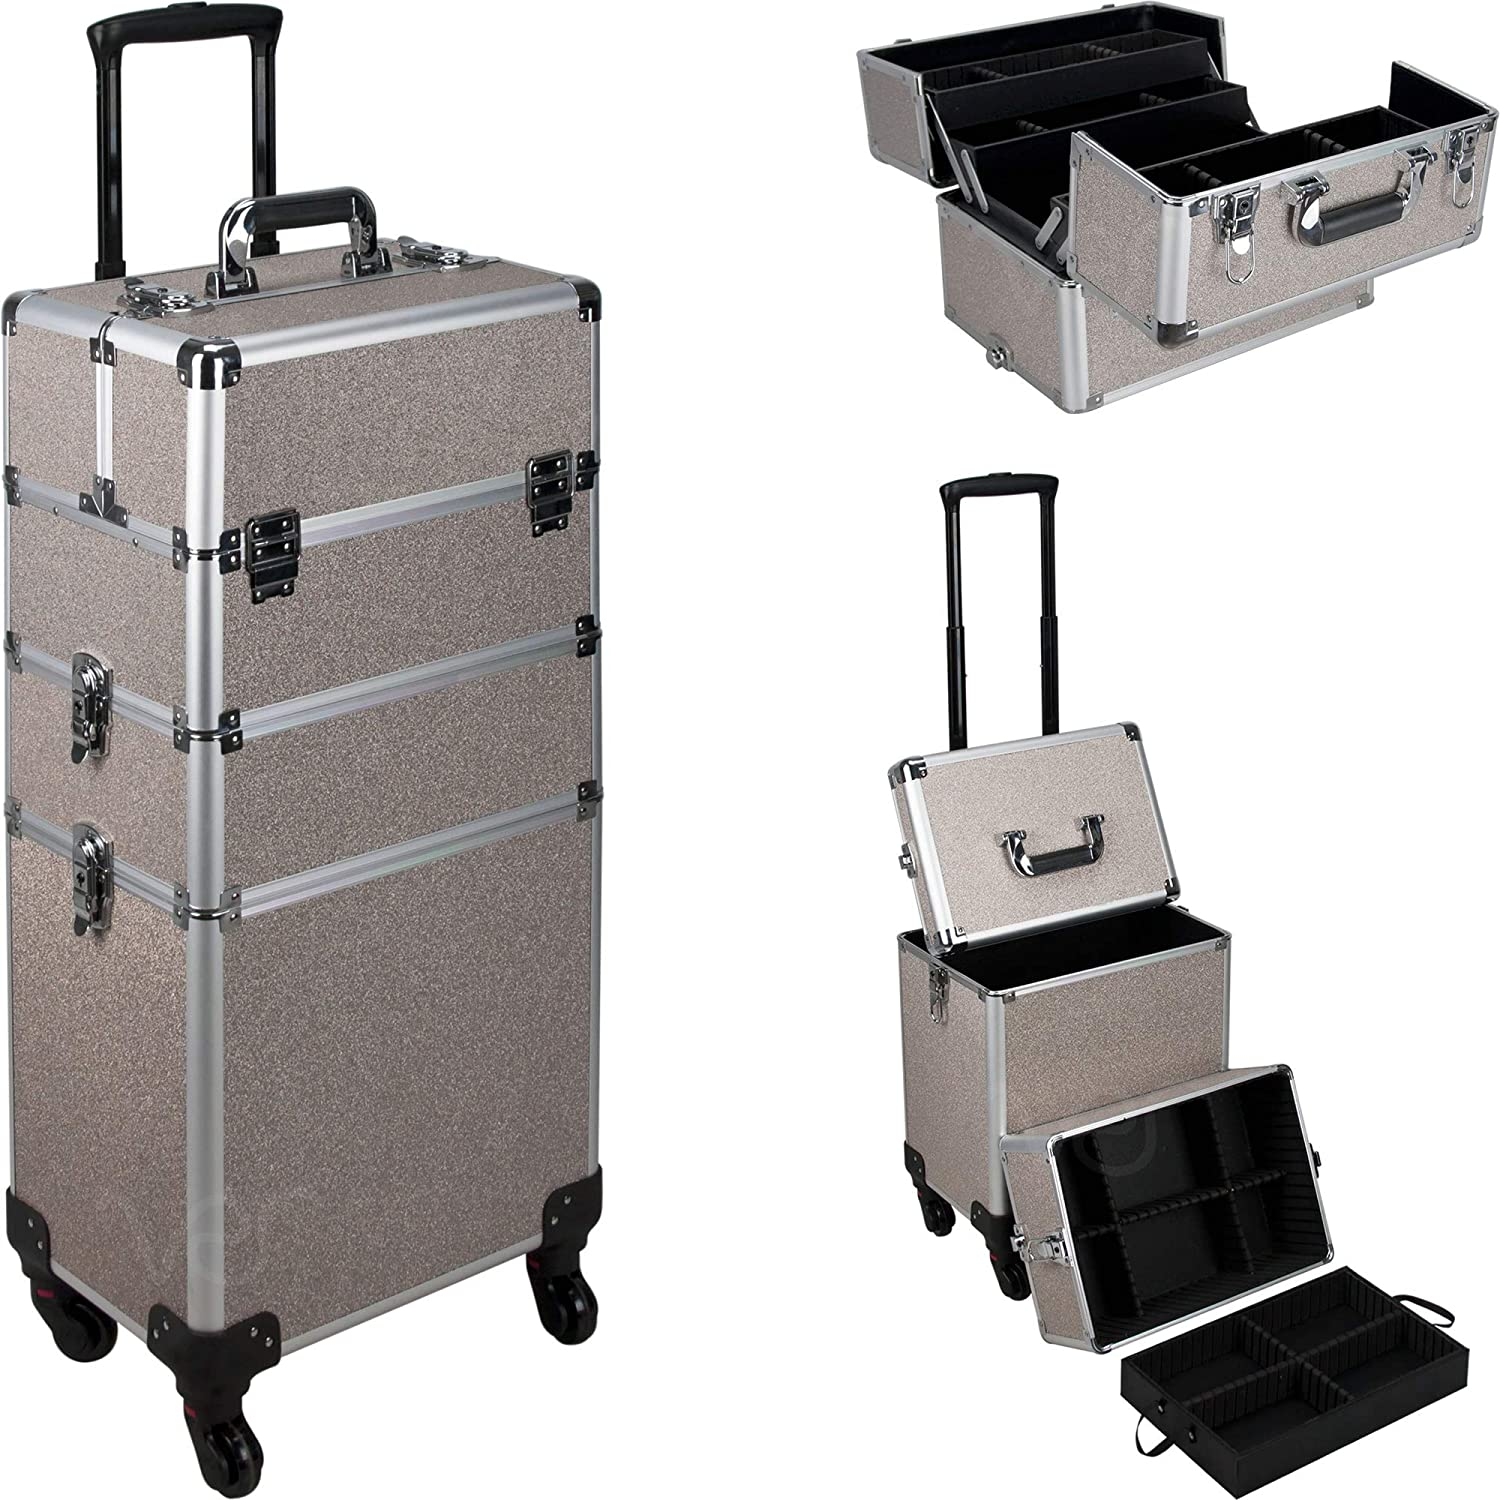 Ver Beauty 7-in-1 Professional 4 Wheels Removable Rolling Cosmetic Makeup Artist Train Case Organizer Travel Adjustable Dividers - Vr6506, Silver Beige Glitter